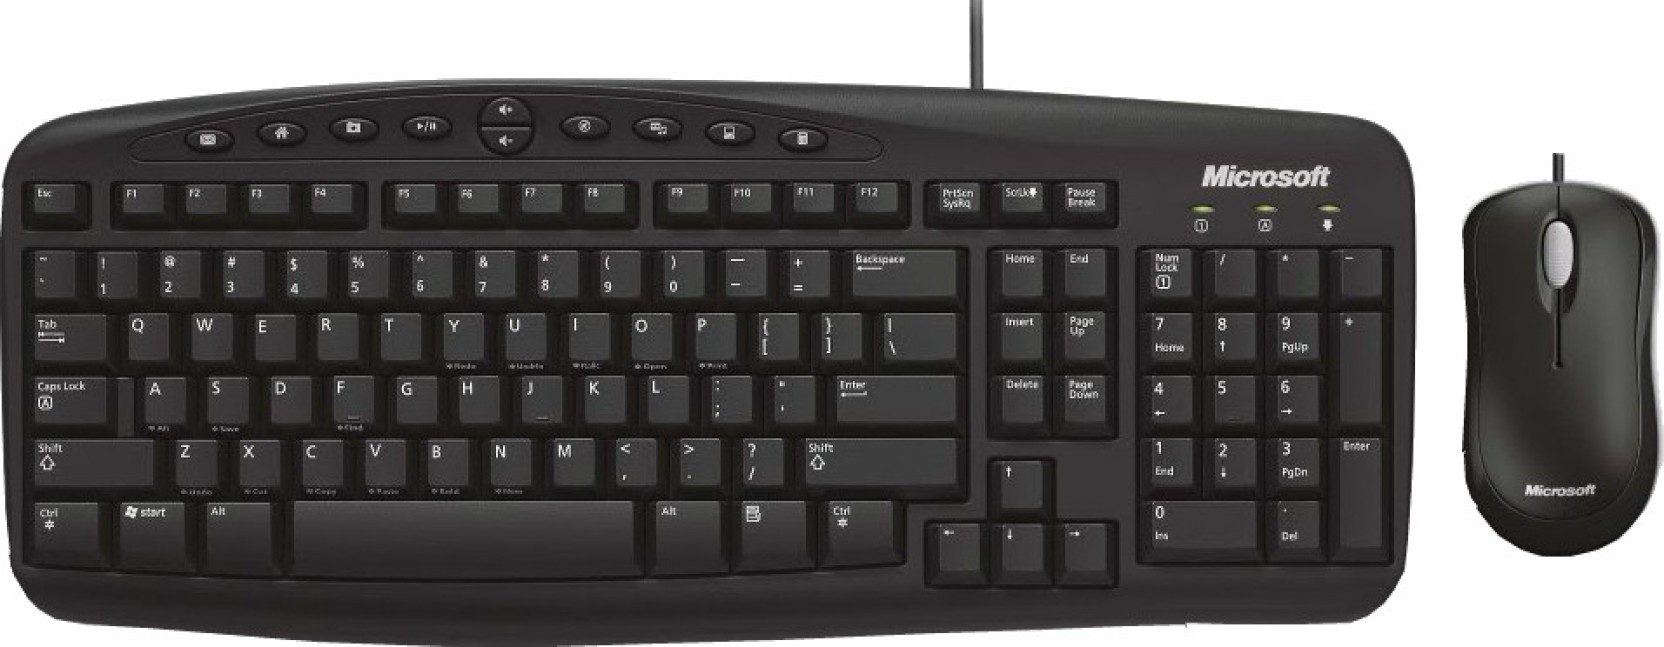 microsoft wired desktop 500 keyboard and mouse combo microsoft. Black Bedroom Furniture Sets. Home Design Ideas